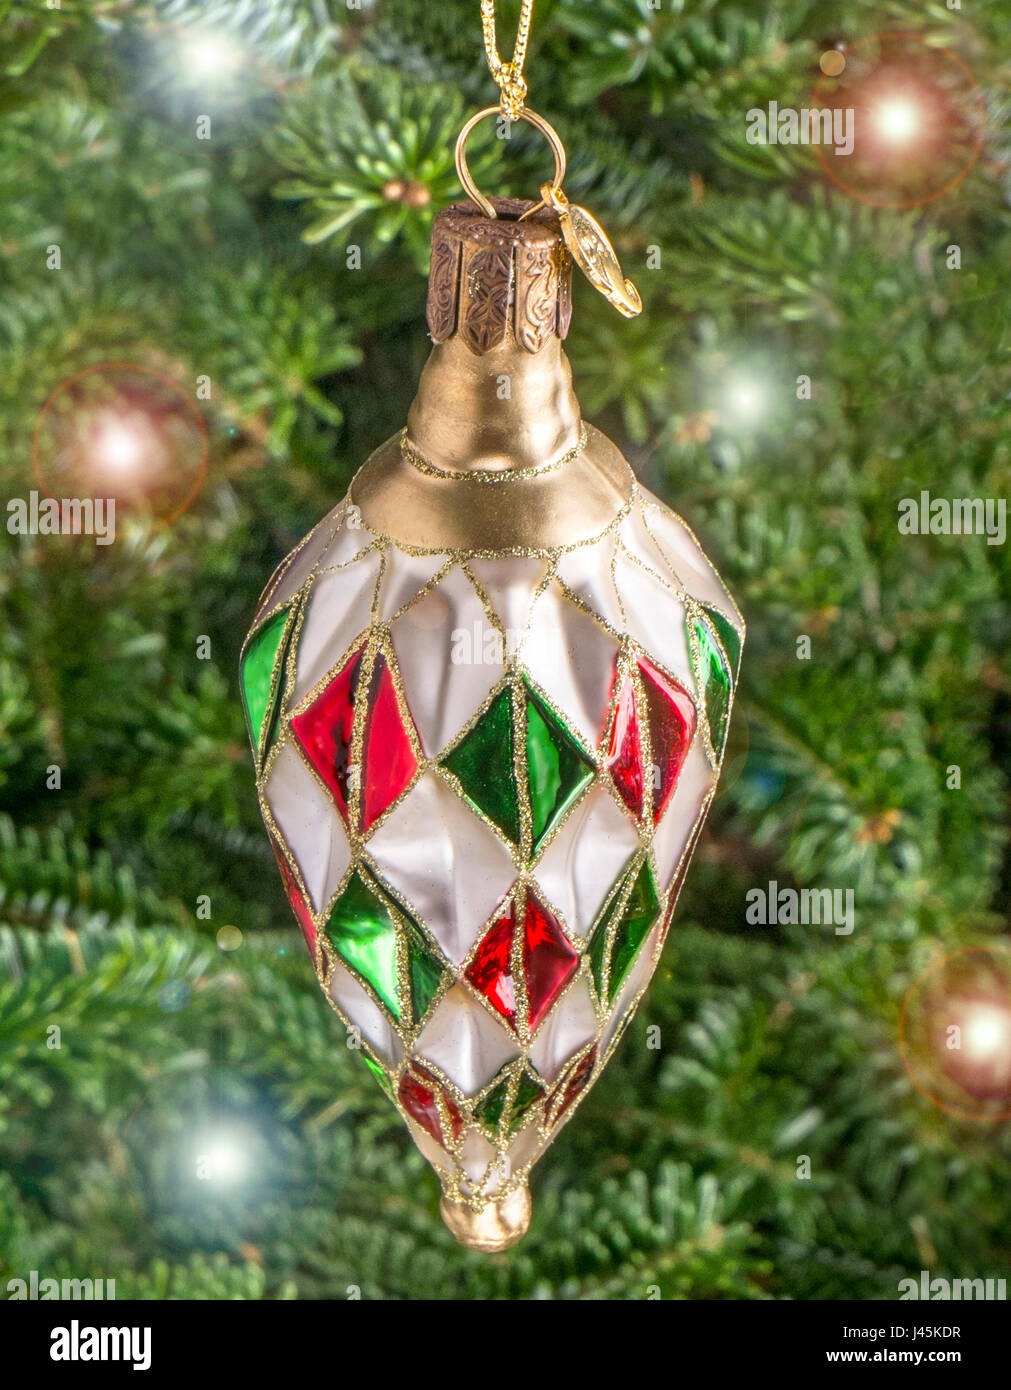 Christmas bauble hanging from a tree in the shape of a Harlequin Jewel - Stock Image